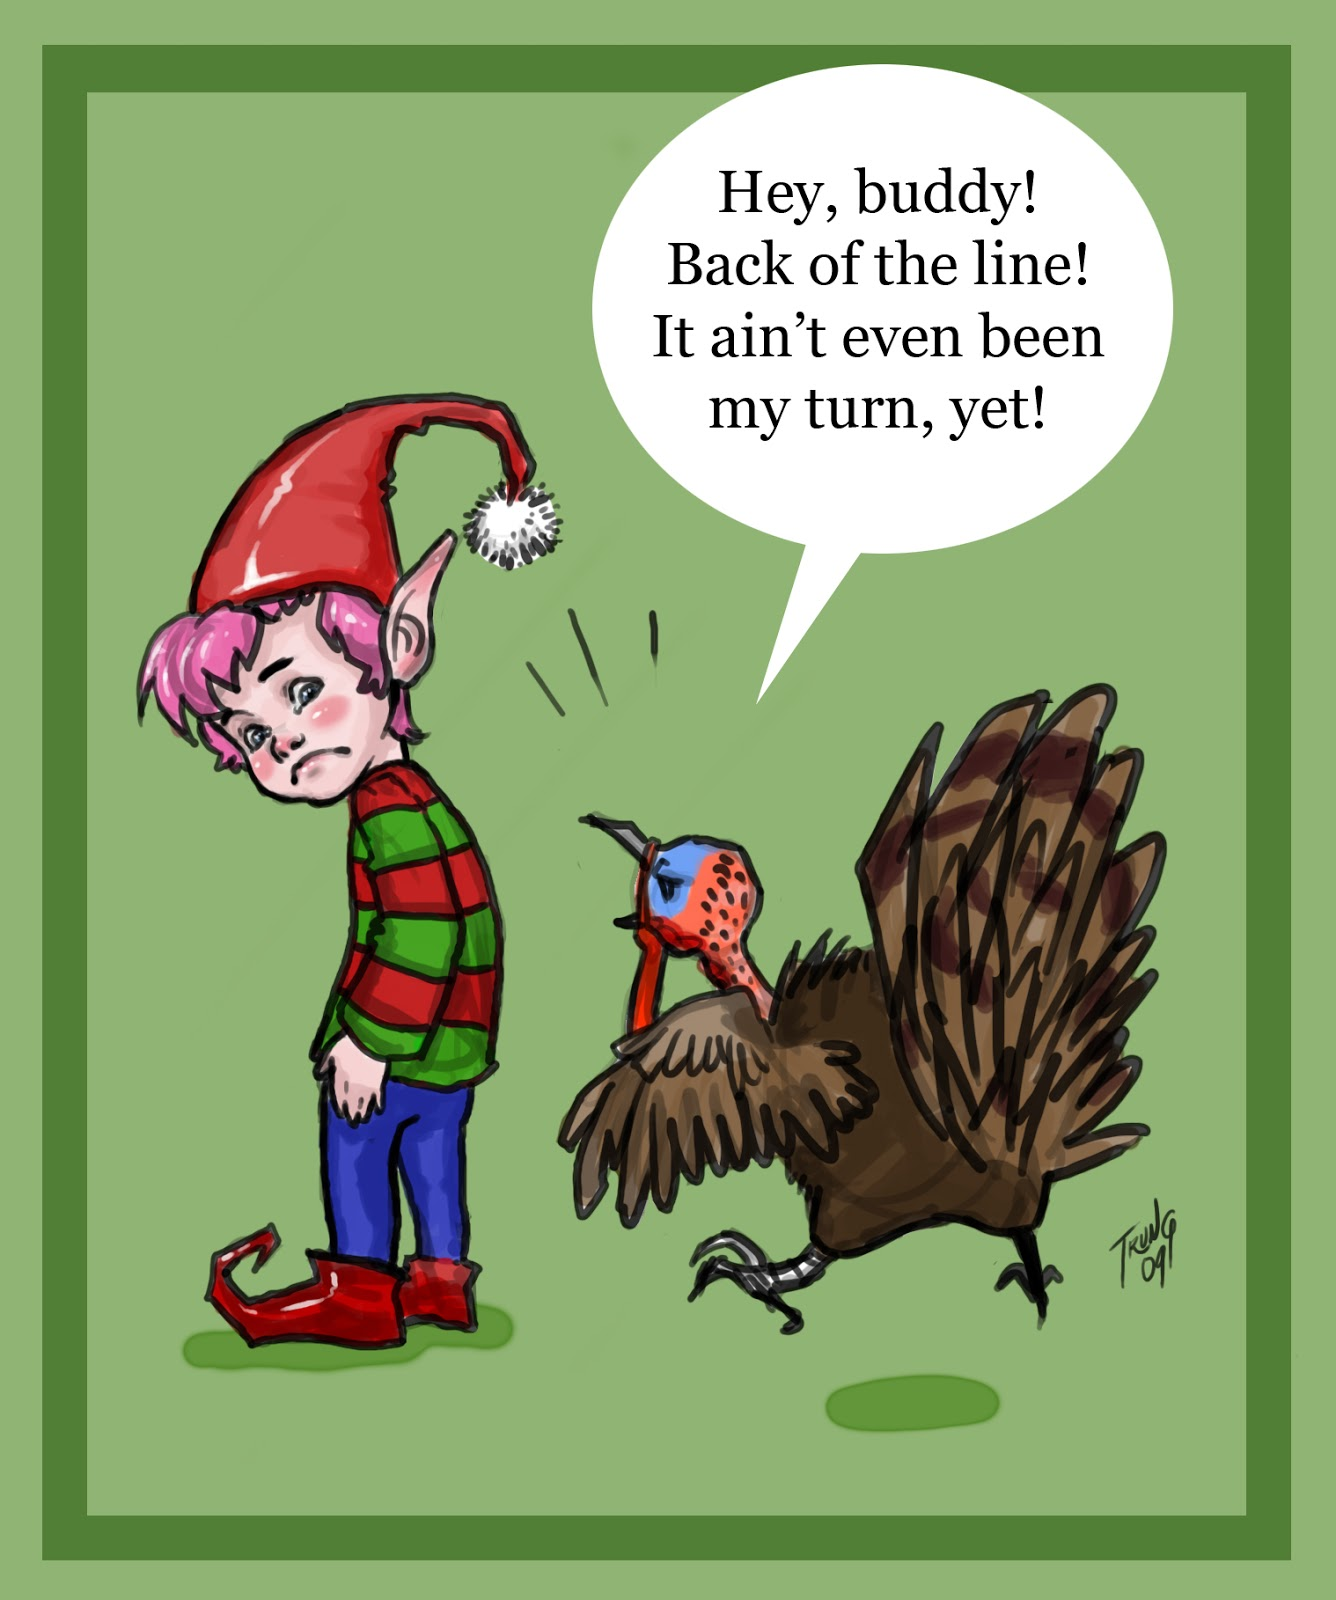 Red Vines and Red Wine: It's not Christmas YET!! Let's sing Turkey ...